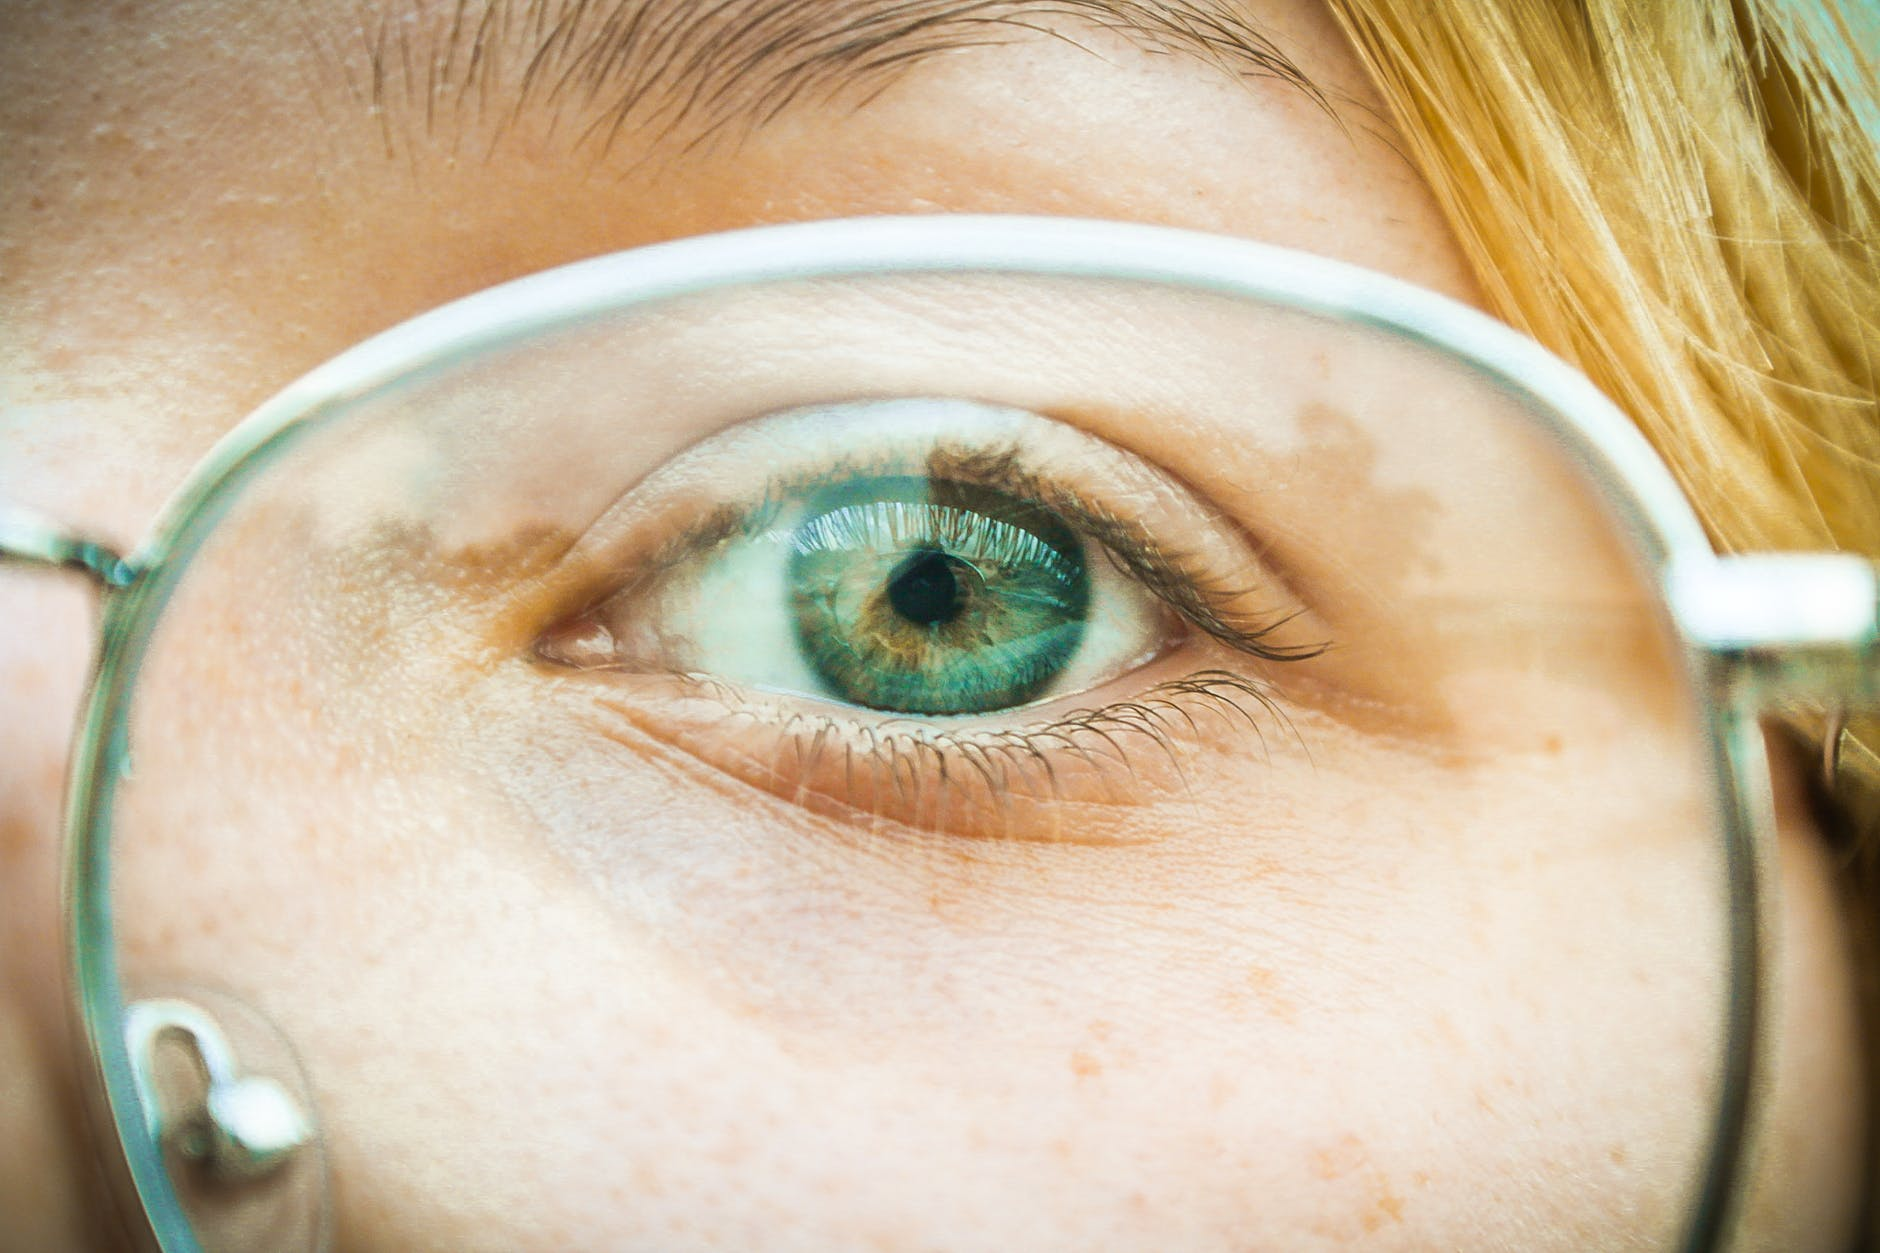 An image of a person's eye with eyeglasses on